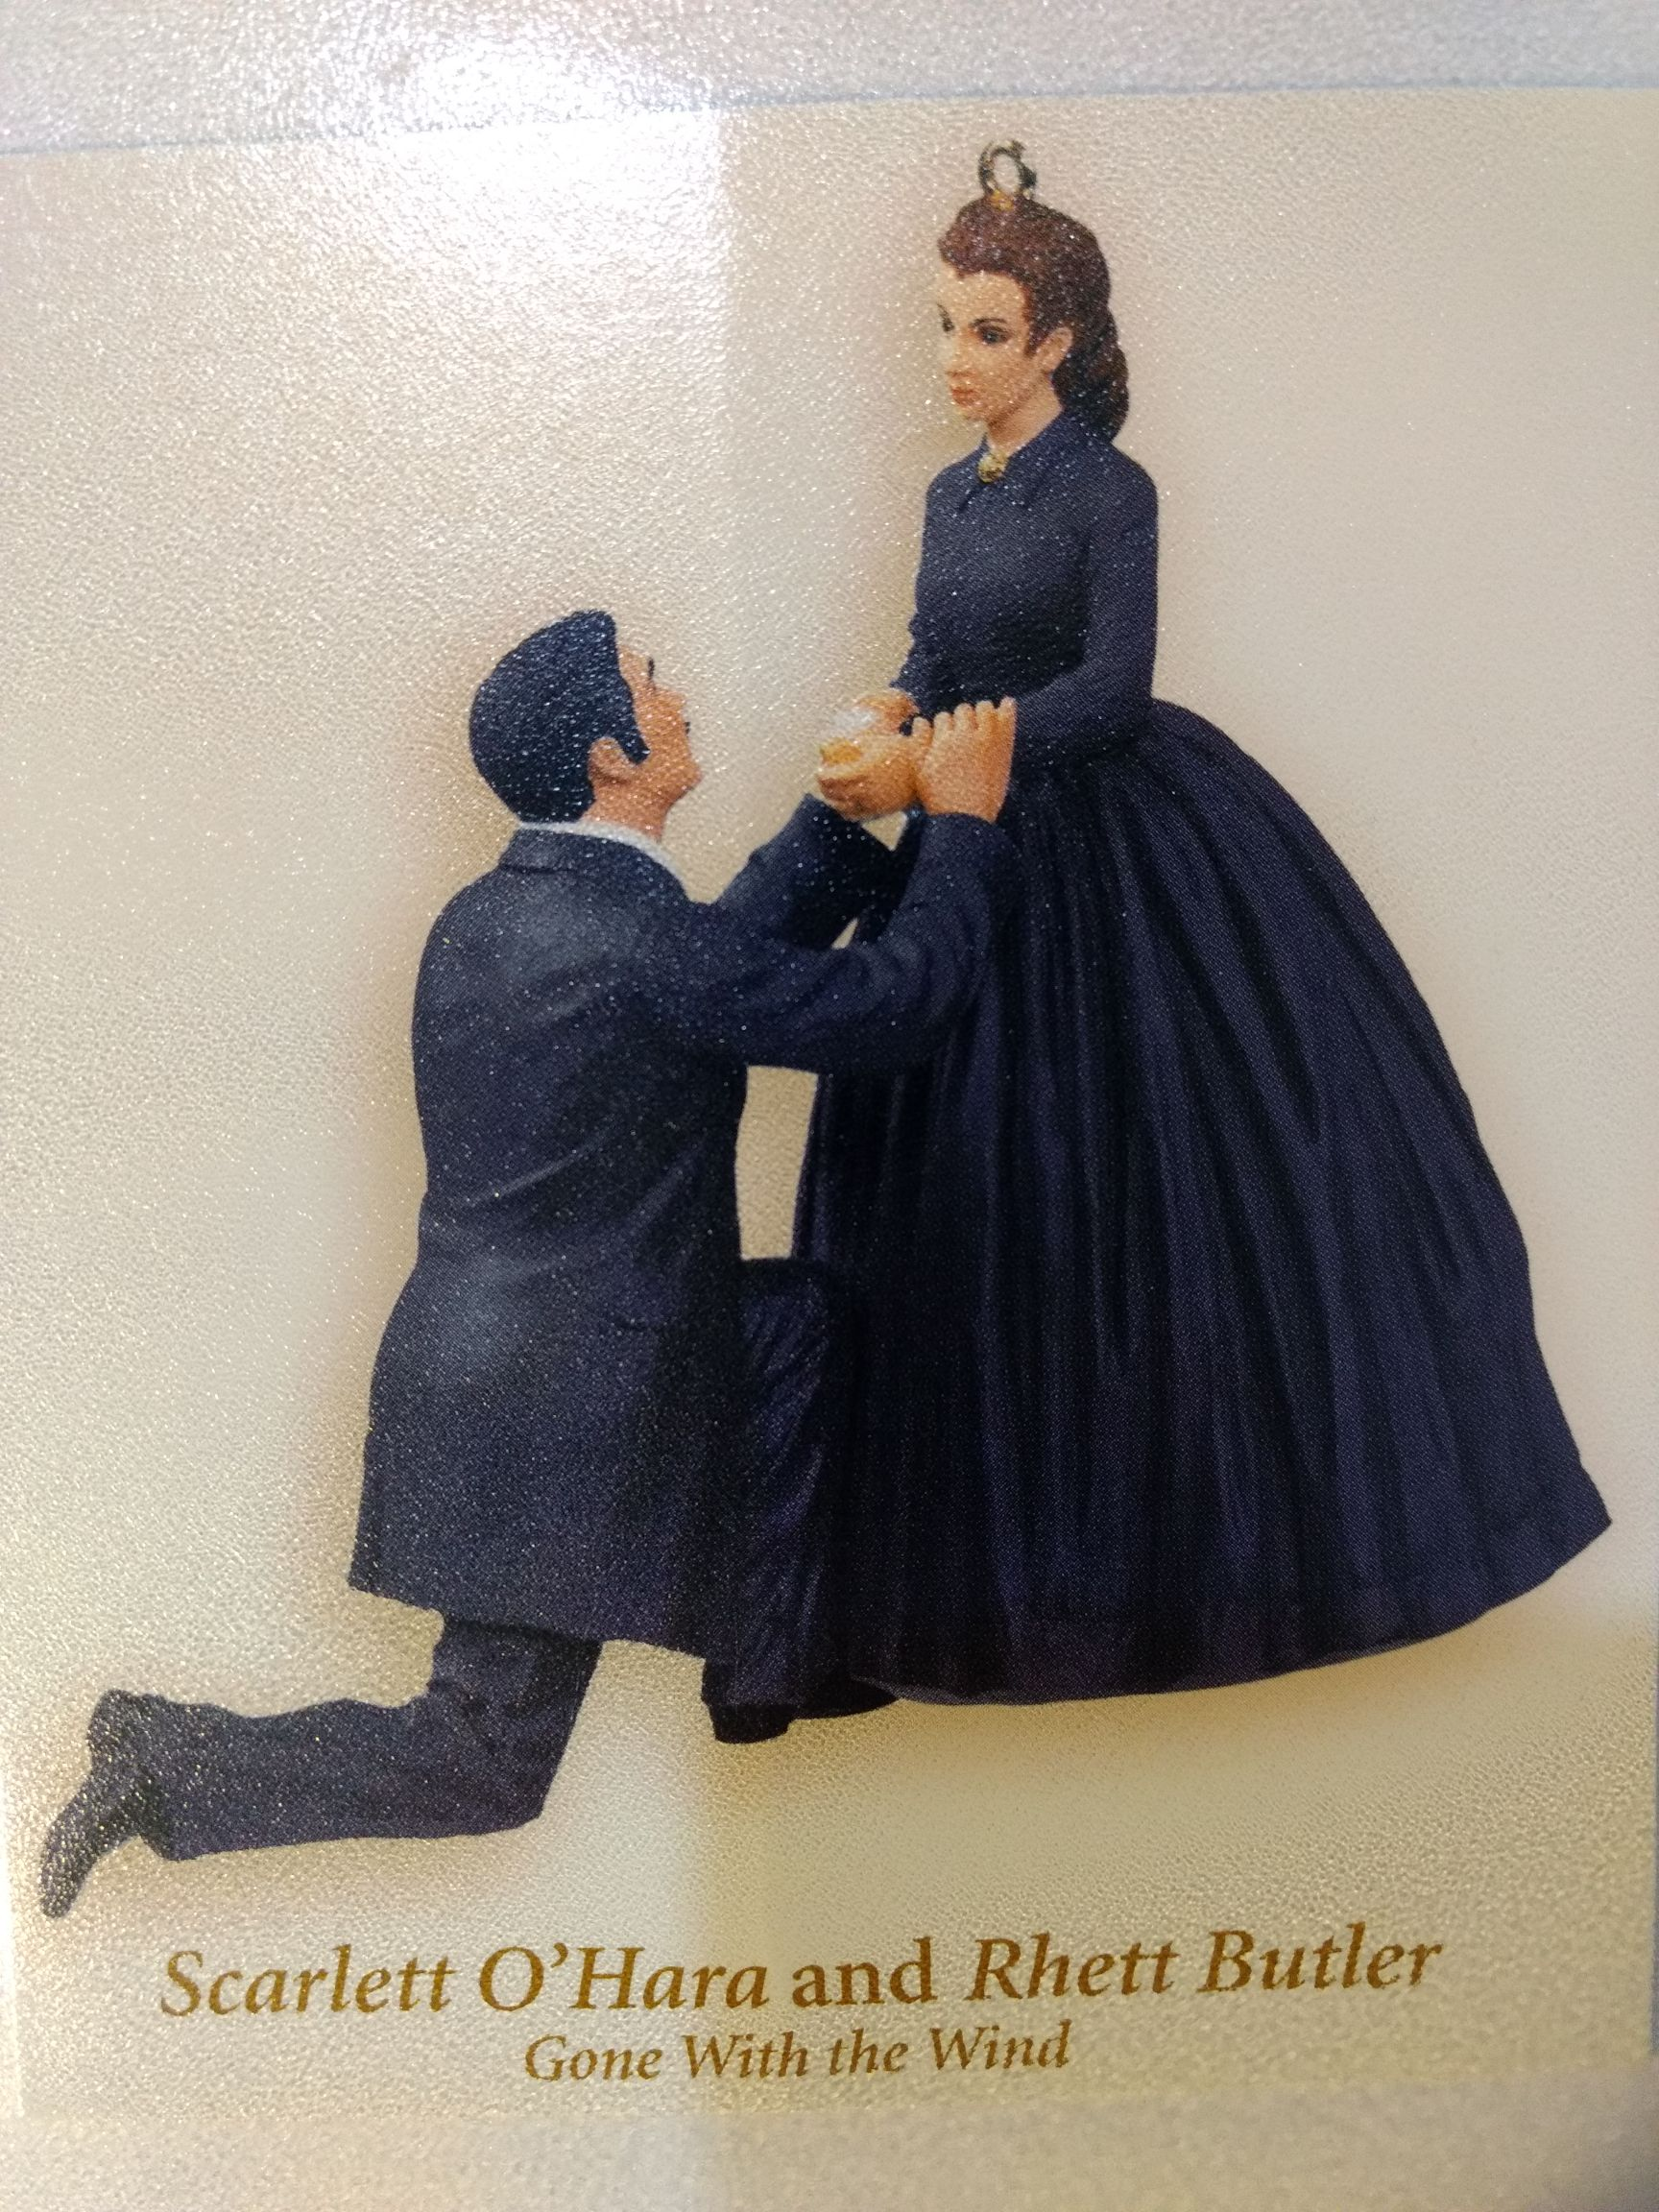 Gone With The Wind - Scarlett O'Hara & Rhett Bulter Kneeling Ornament front image (front cover)